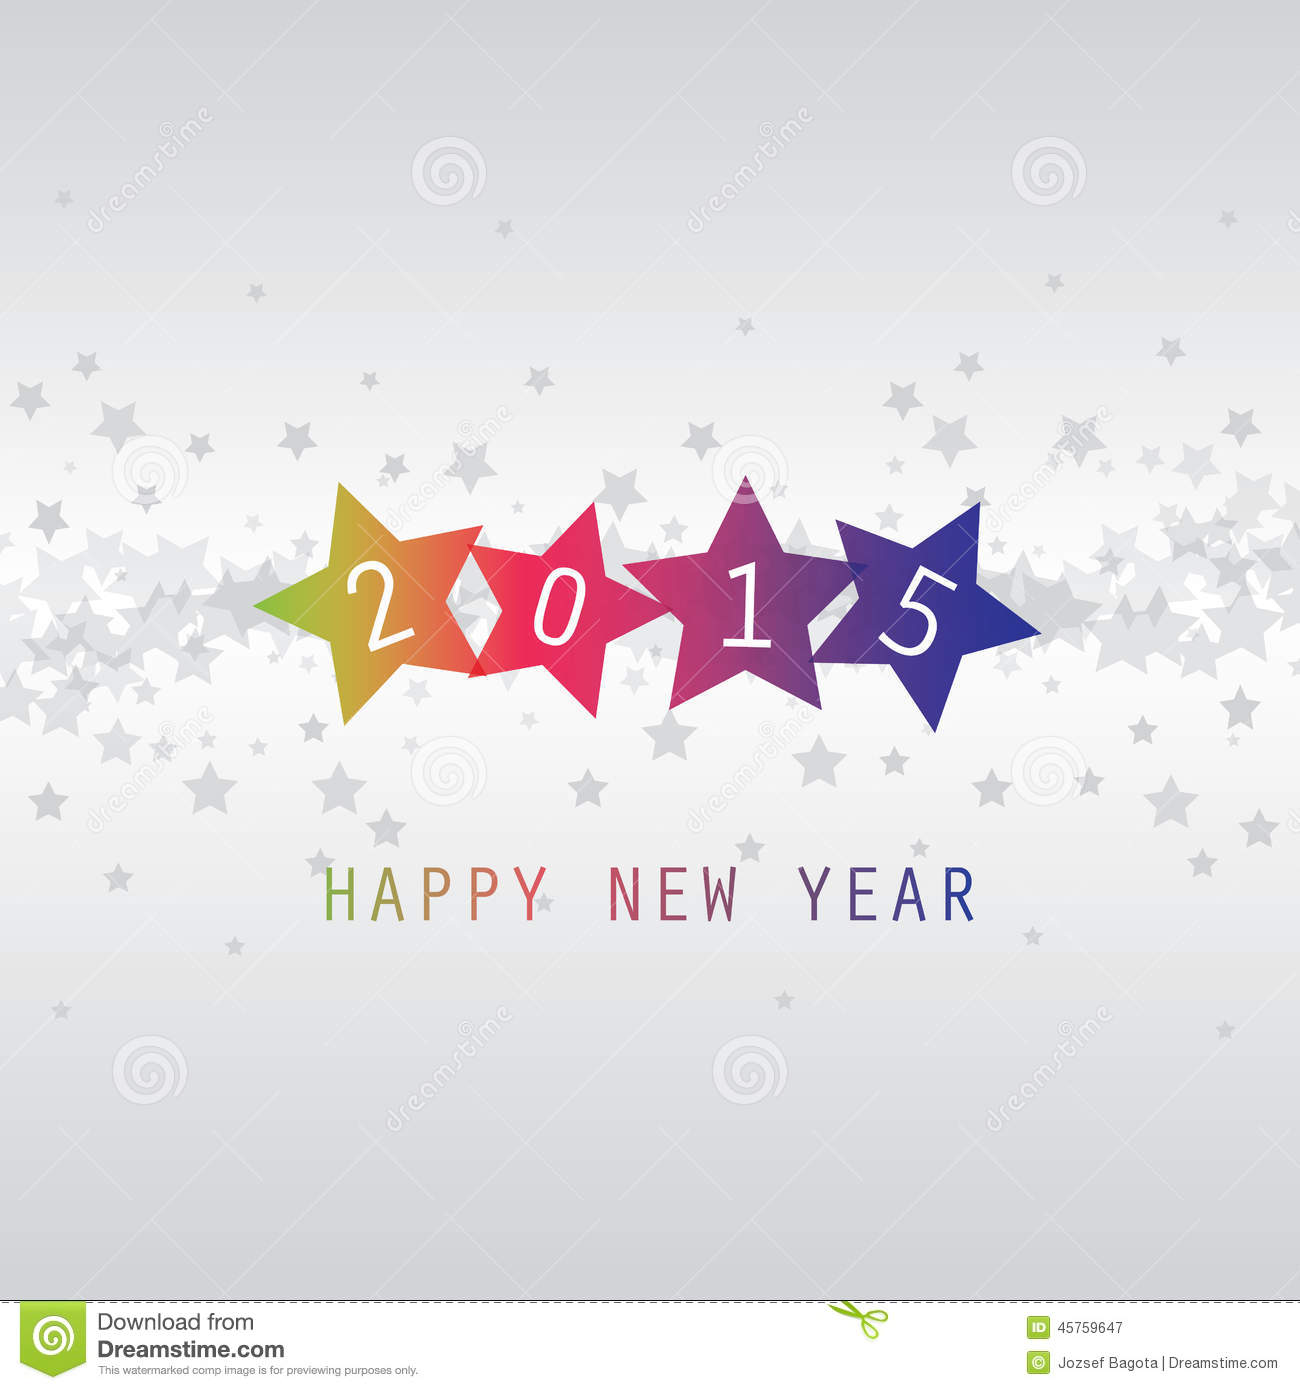 New Year Card - Happy New Year 2015 Stock Vector - Image ...